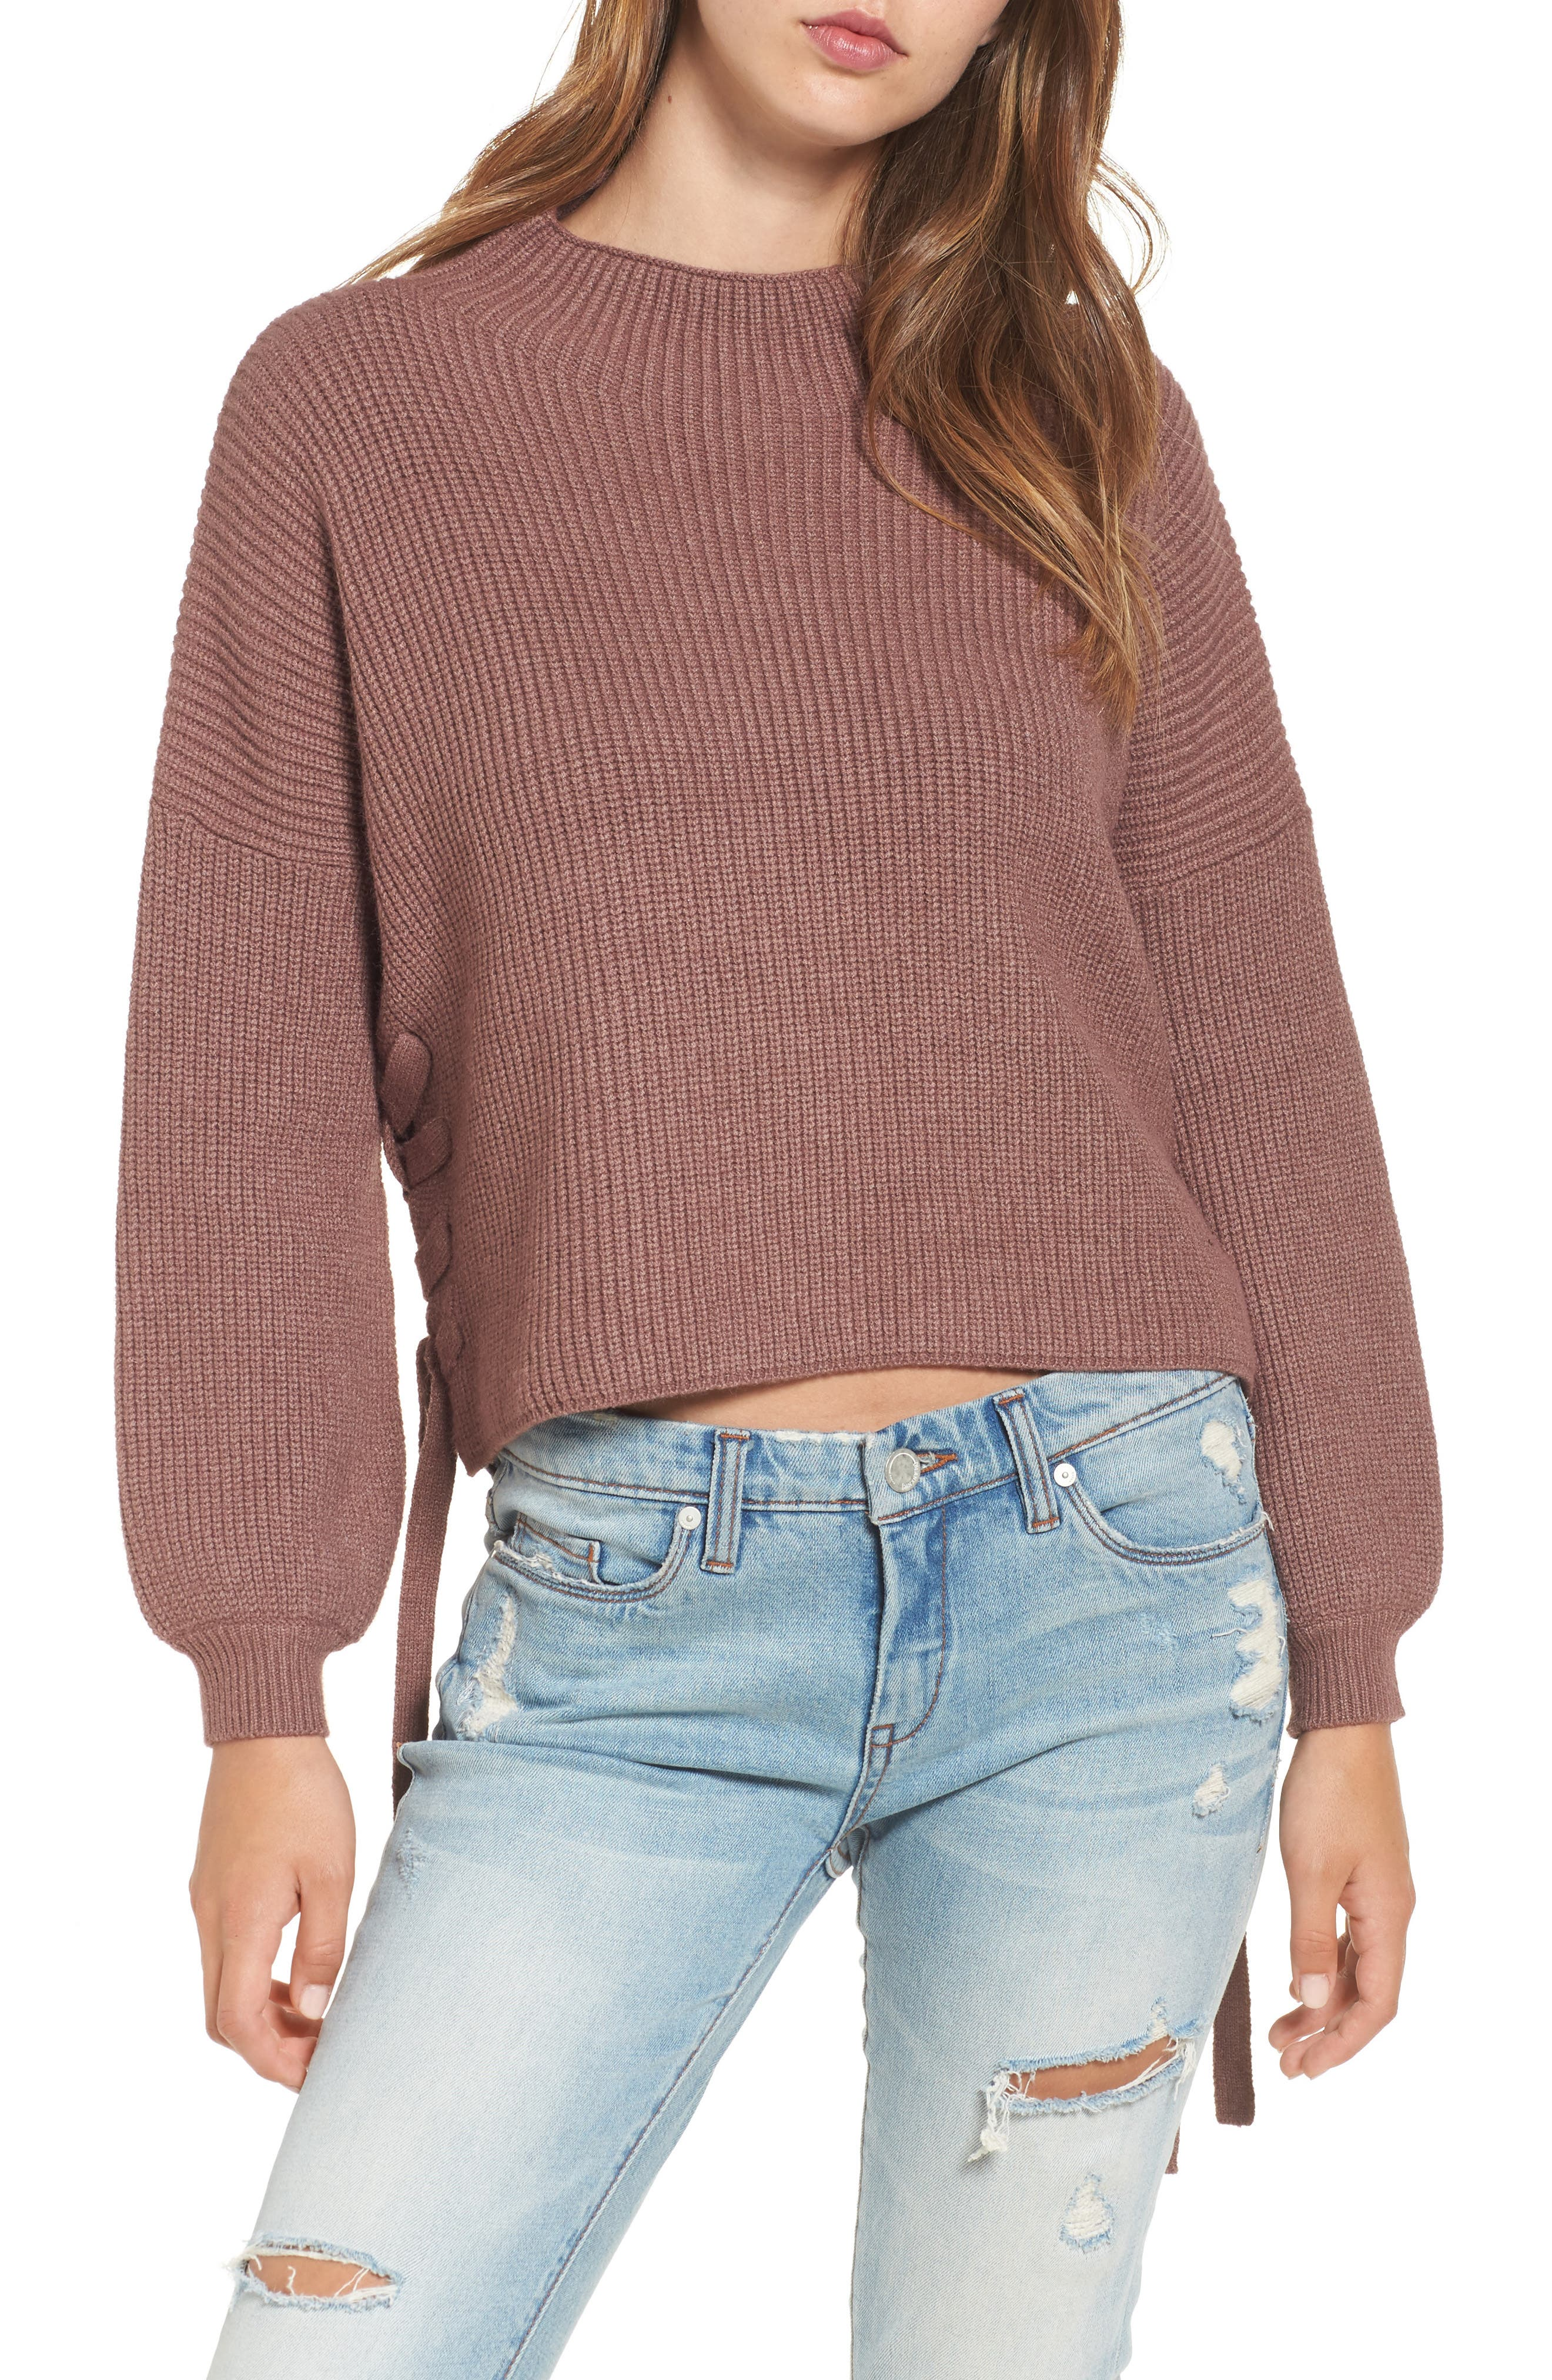 Dreamers by Debut Lace-Up Sweater